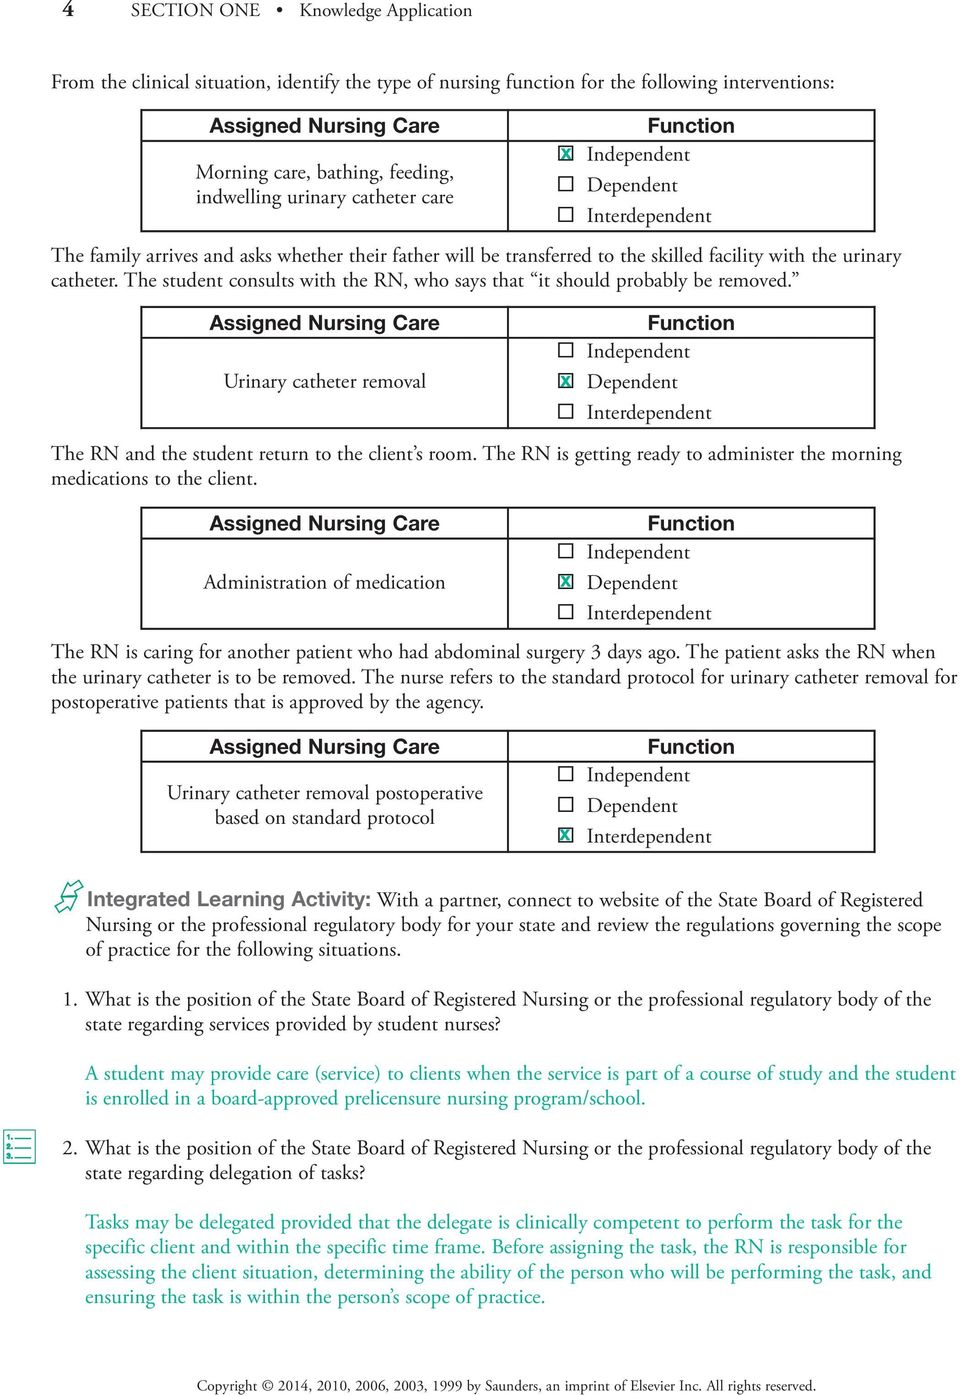 SECTION ONE ONE KNOWLEDGE APPLICATION - PDF